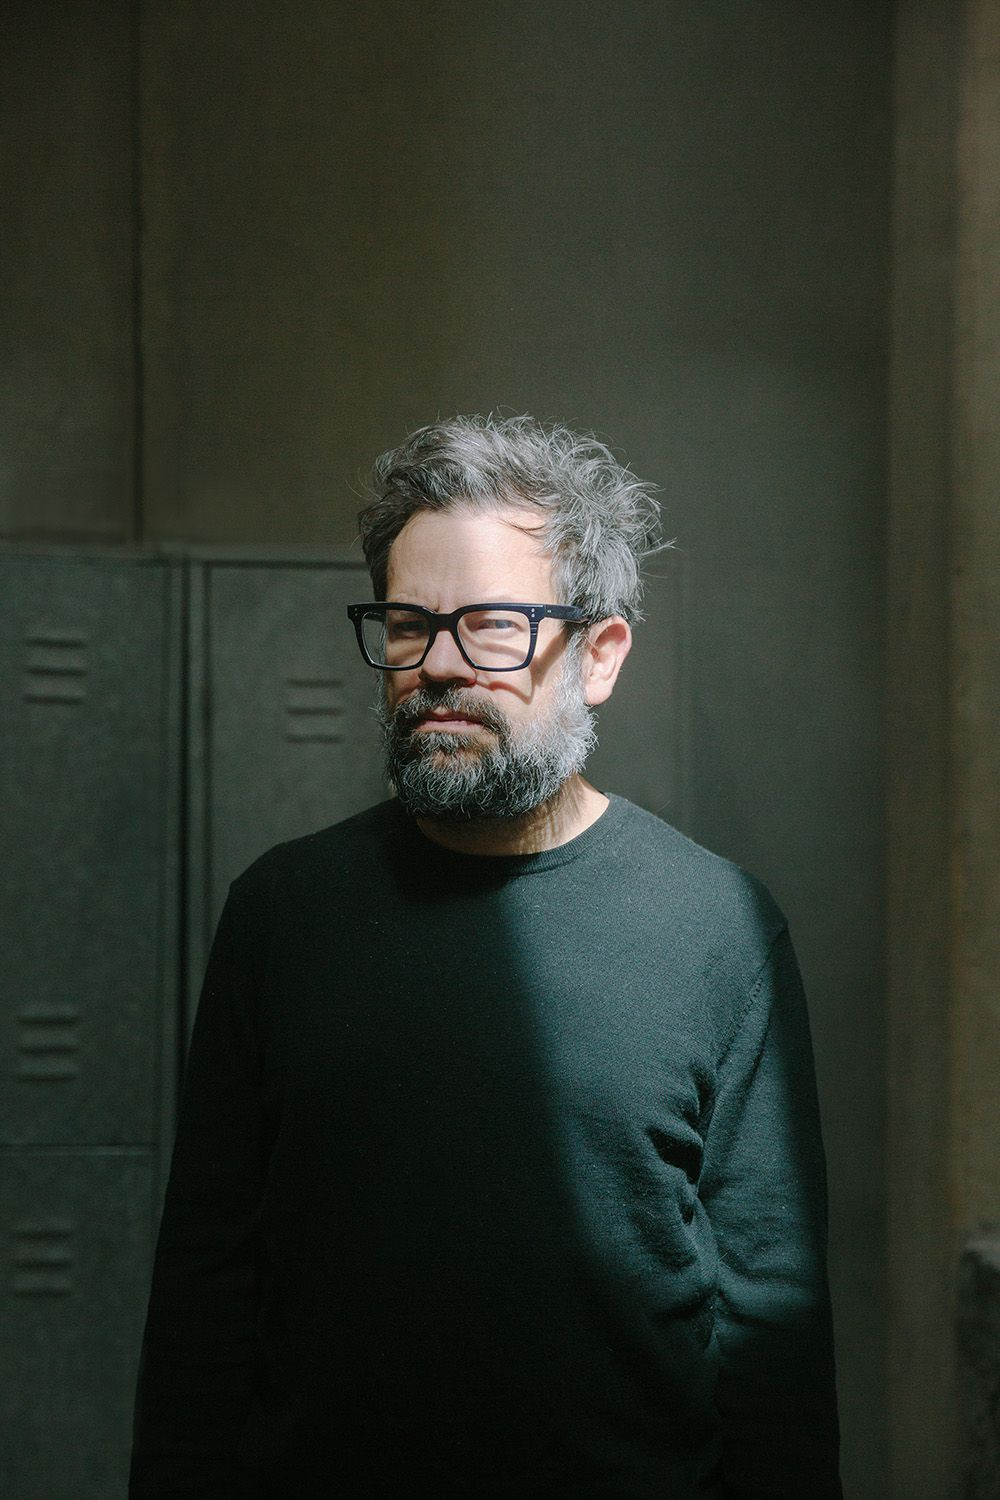 Pedro Reyes | 2020 Luxembourg Peace Prize